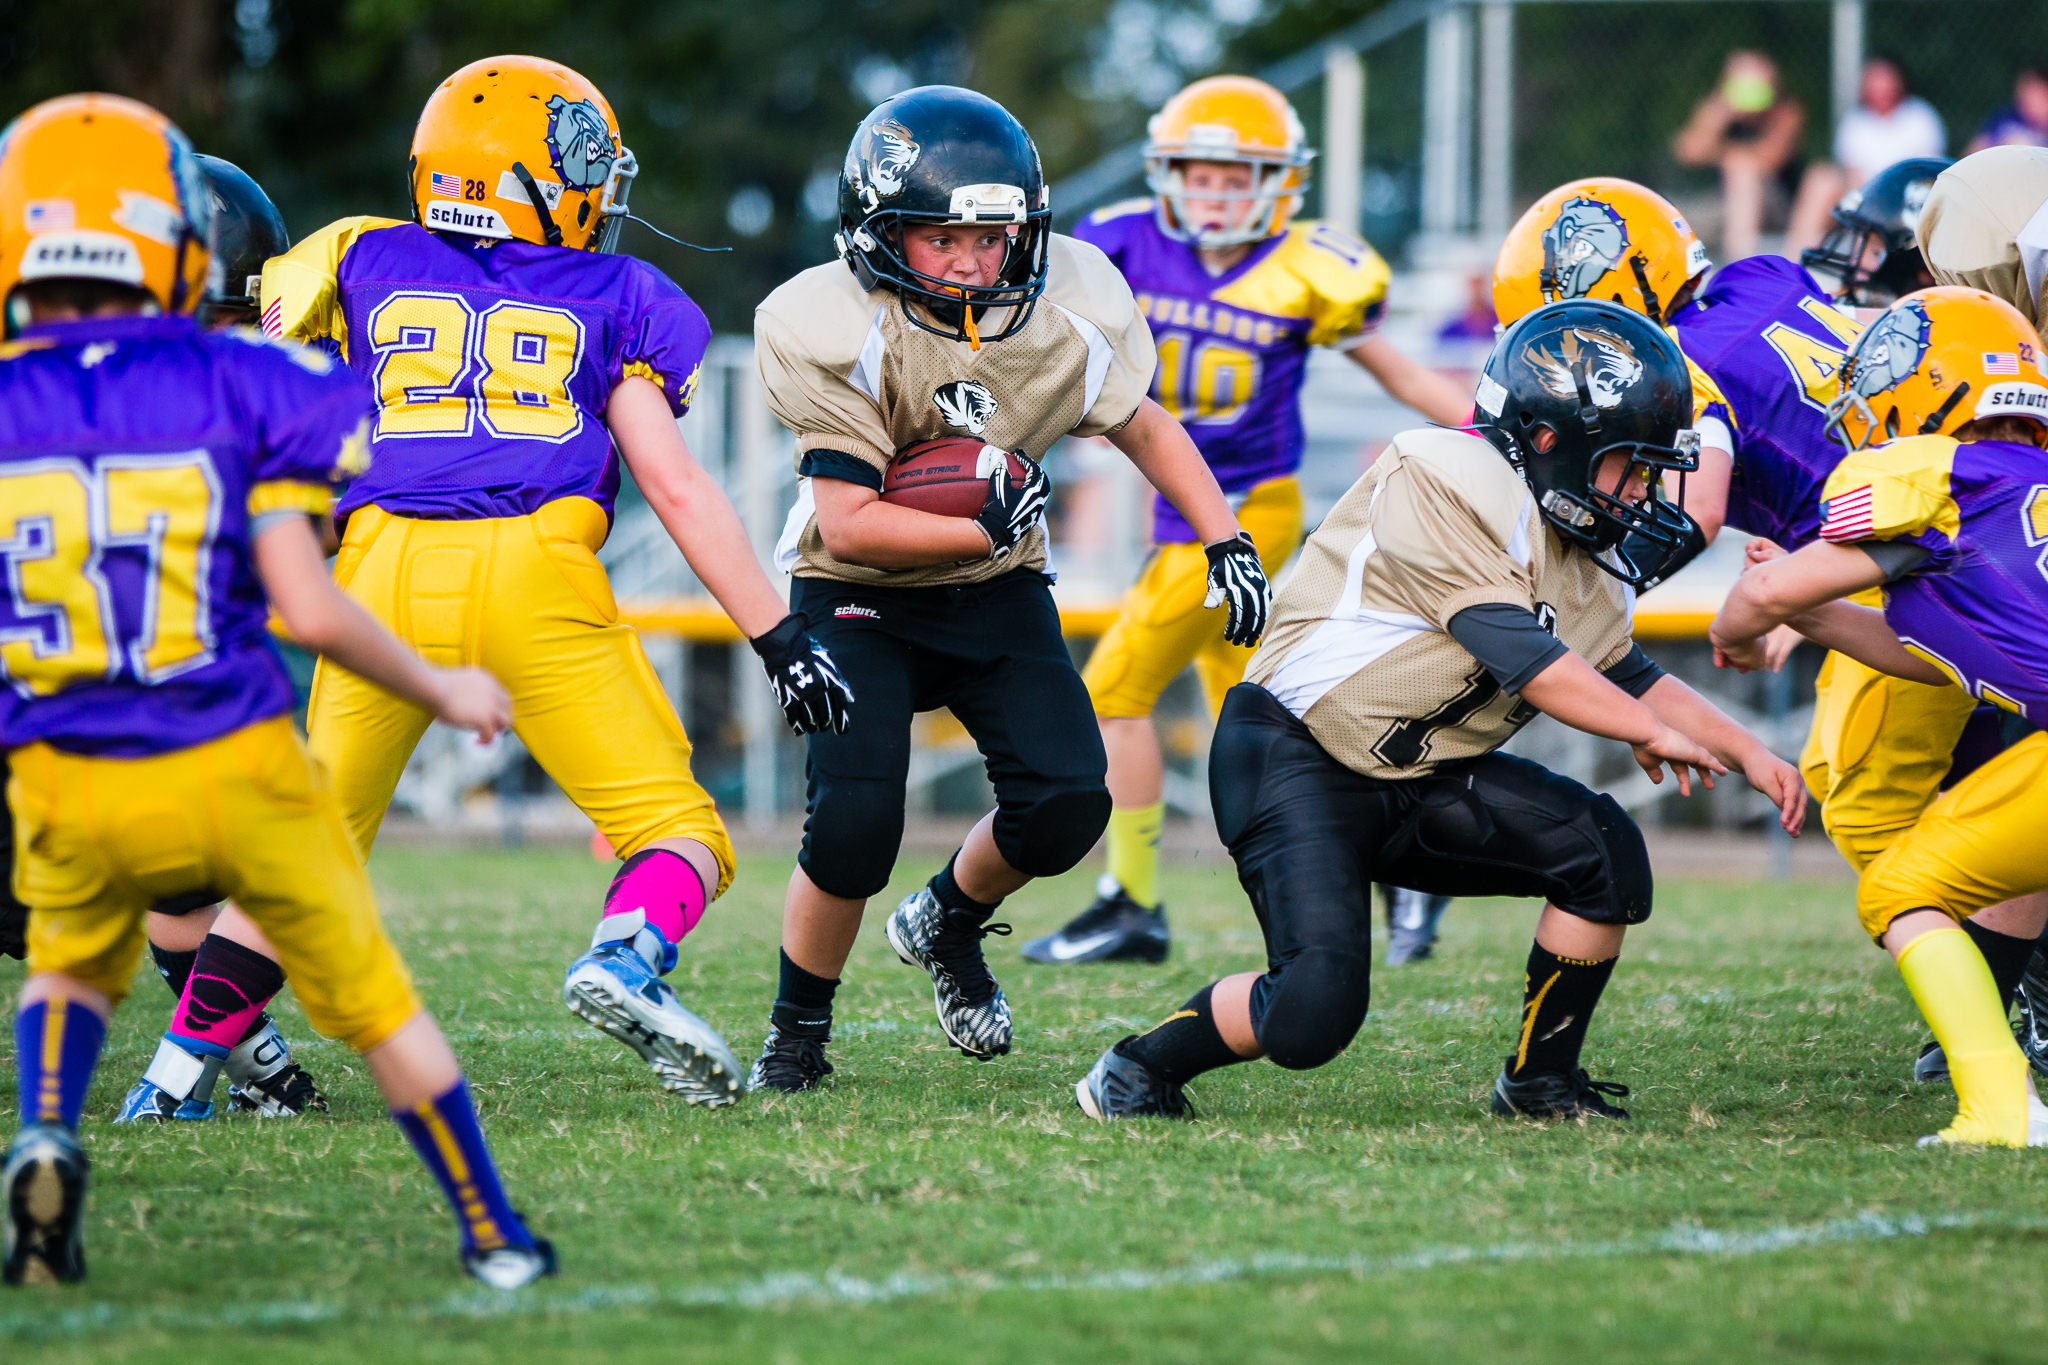 Konner Young had 39 yards and a touchdown for the Tigers Saturday.